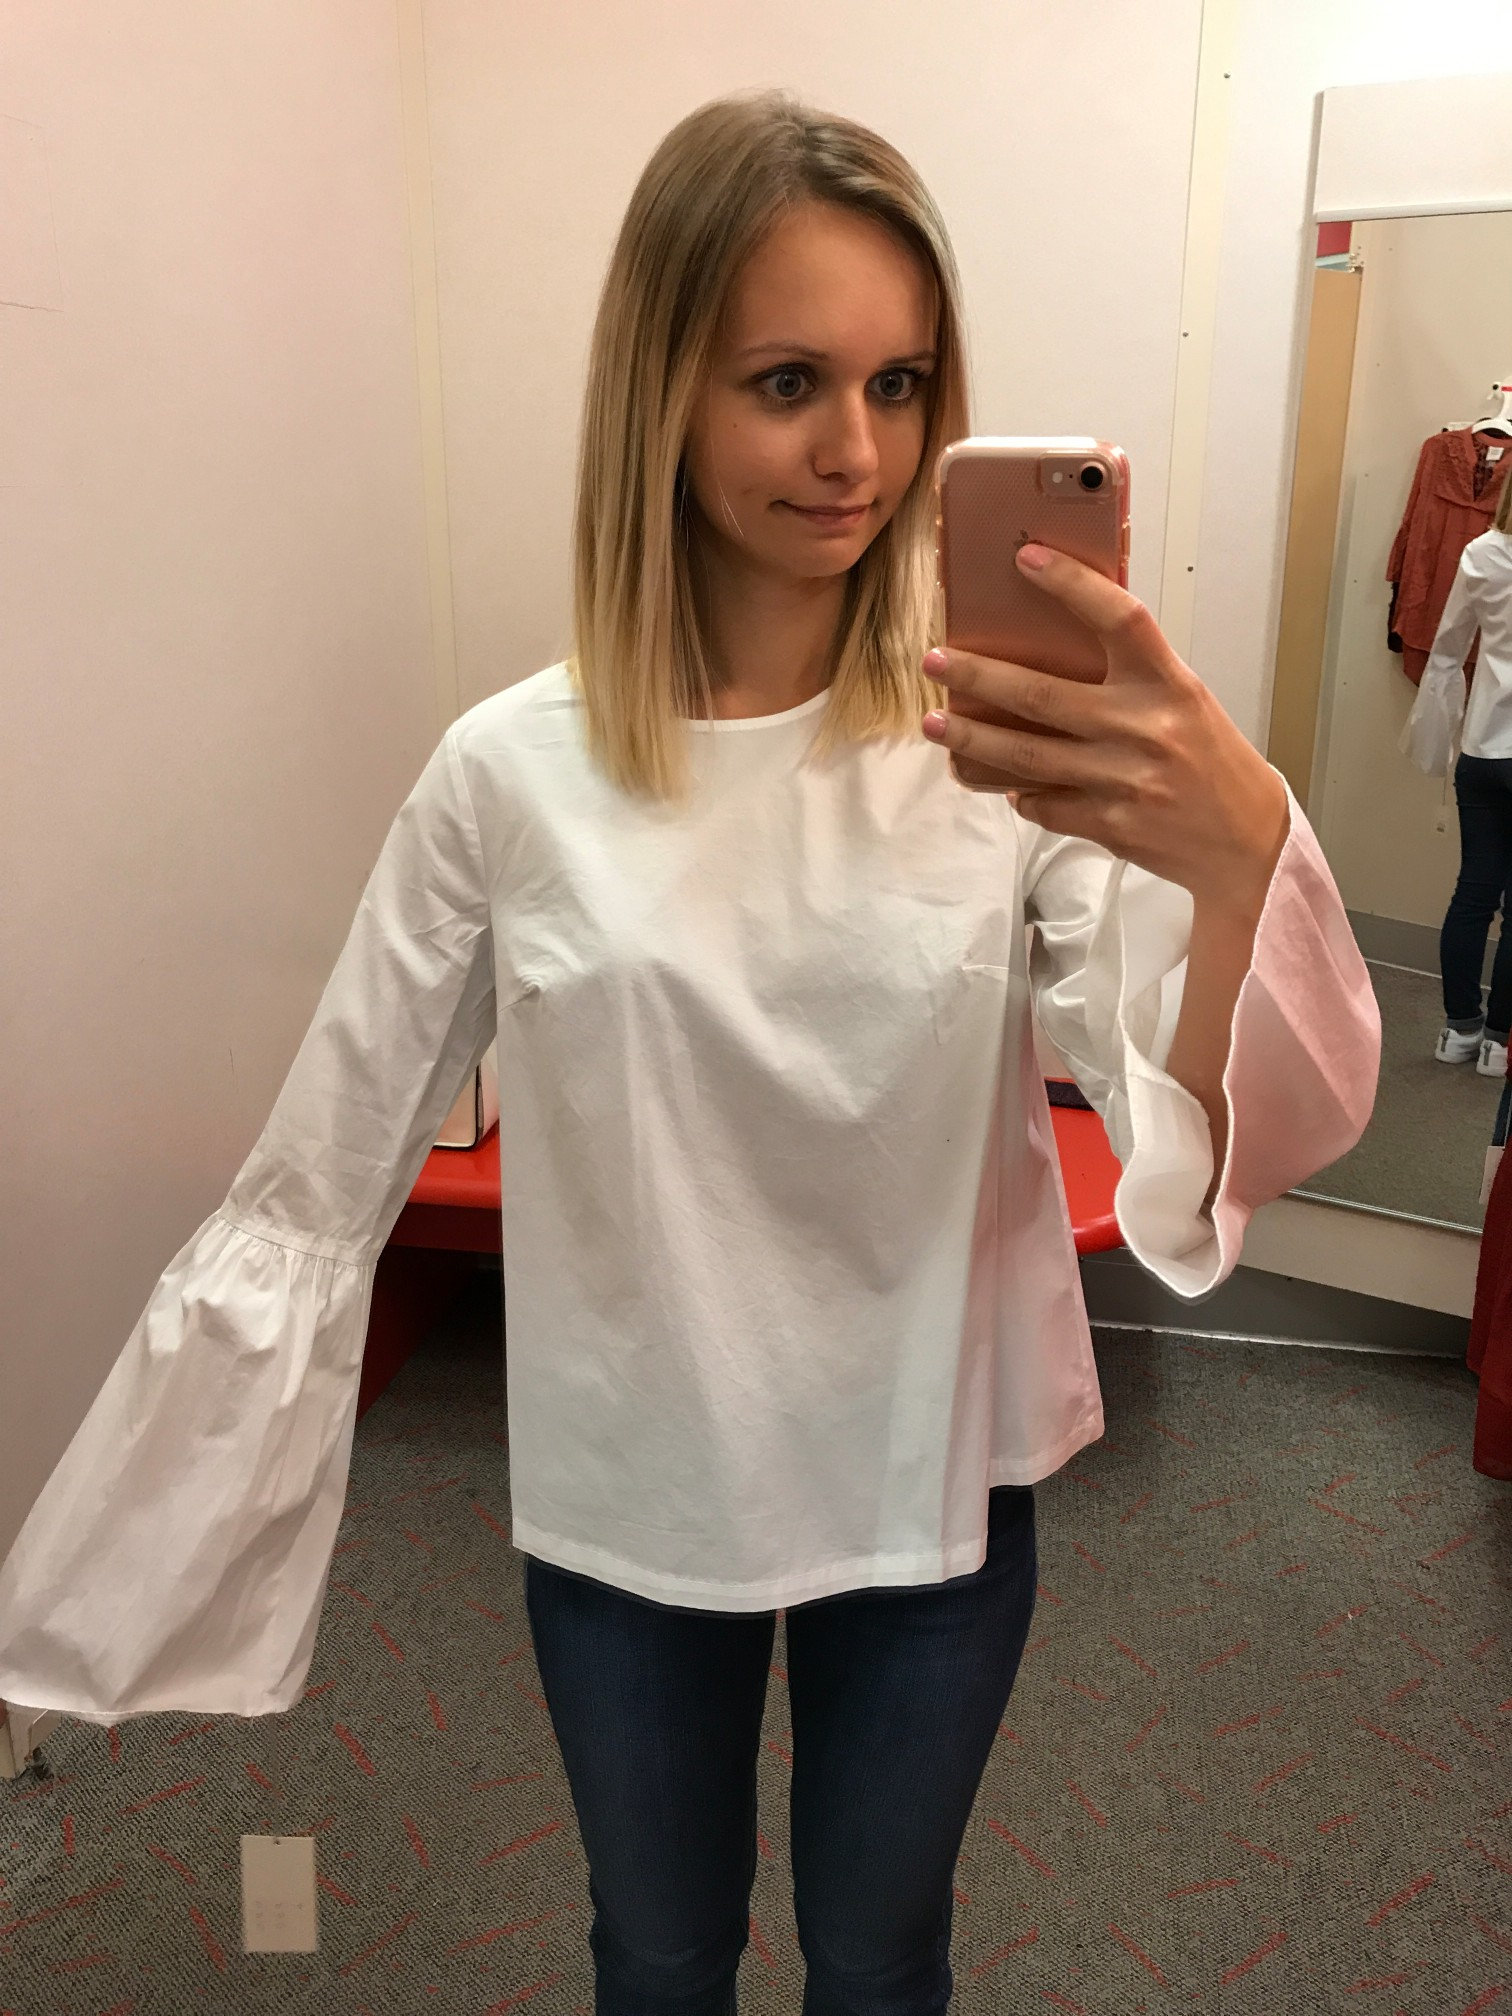 Target A New Day Bell Sleeve Poplin Shirt fitting room adventures little things olga connecticut style blog